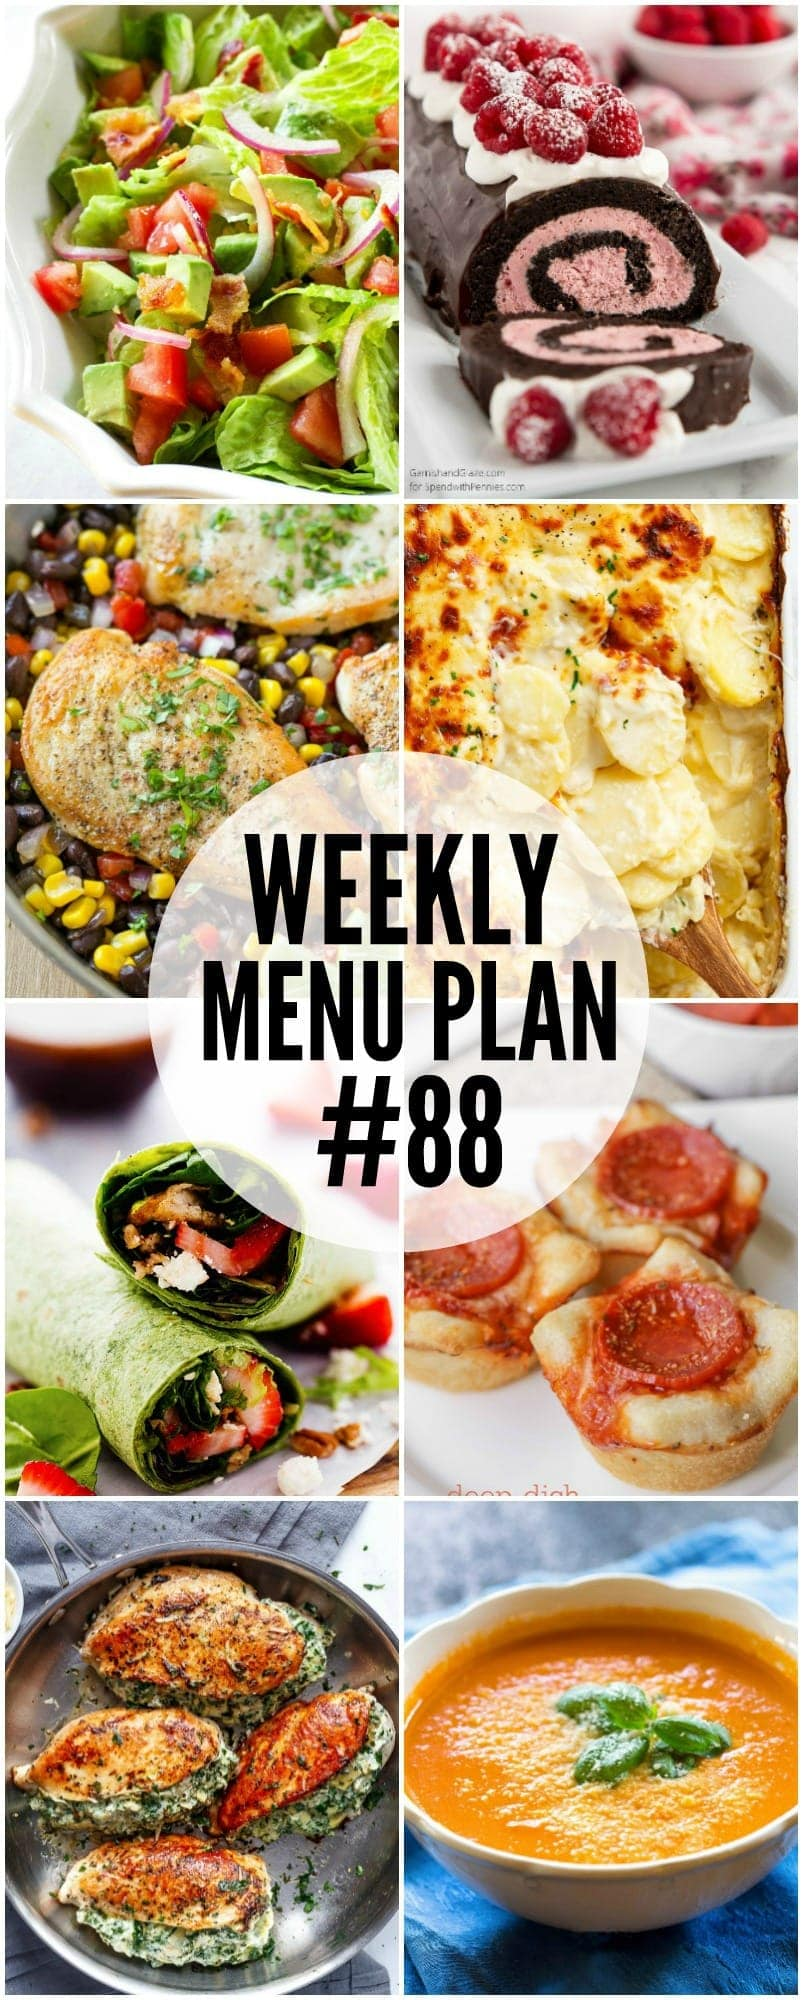 A delicious collection of dinner, side dish and dessert recipes to help you organize your weekly menu plan.